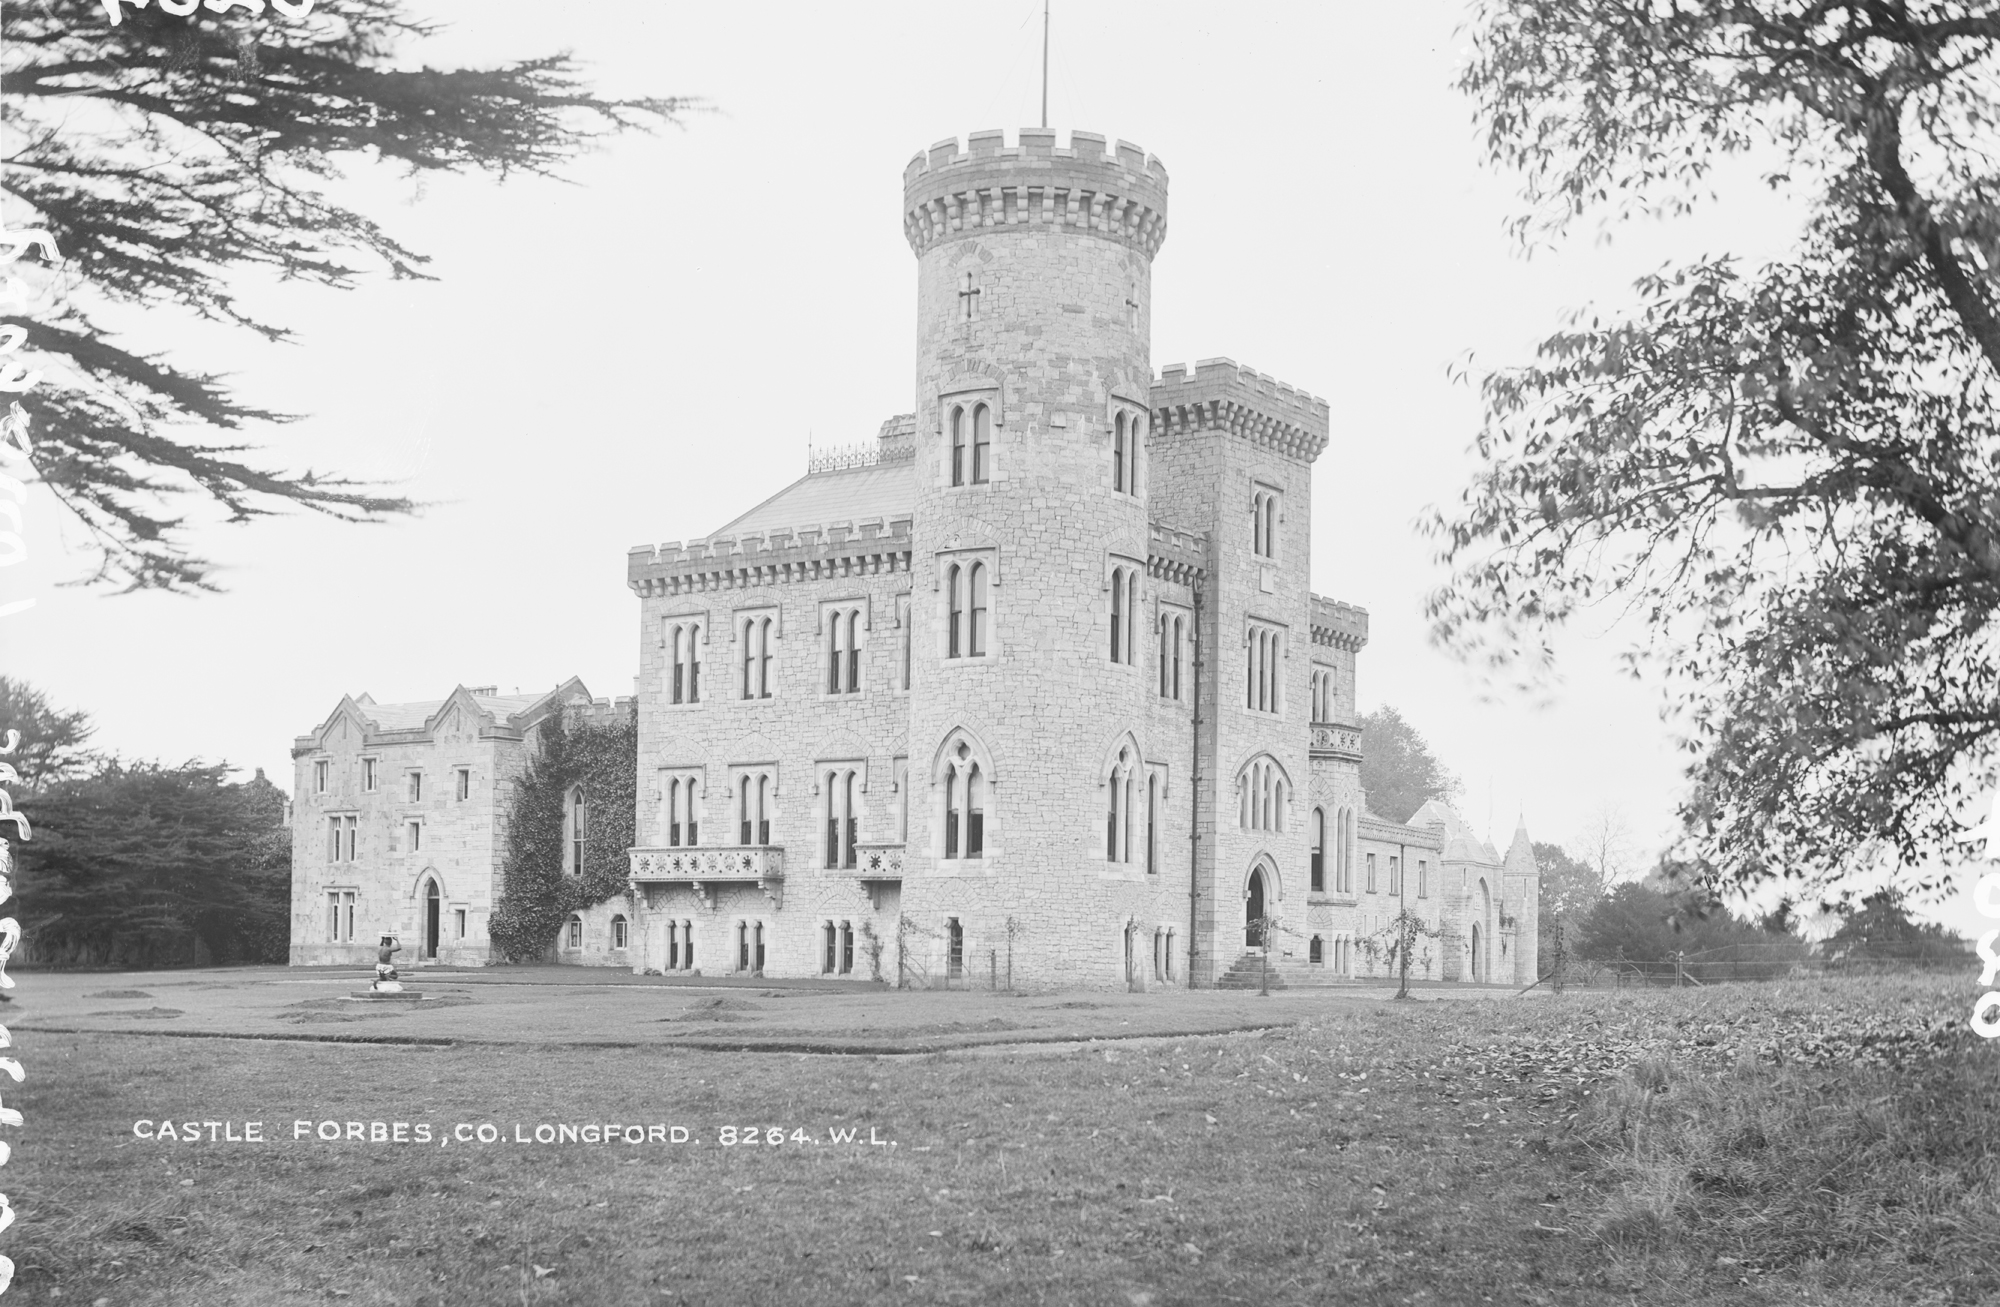 Castle Forbes, Longford, Co. Longford